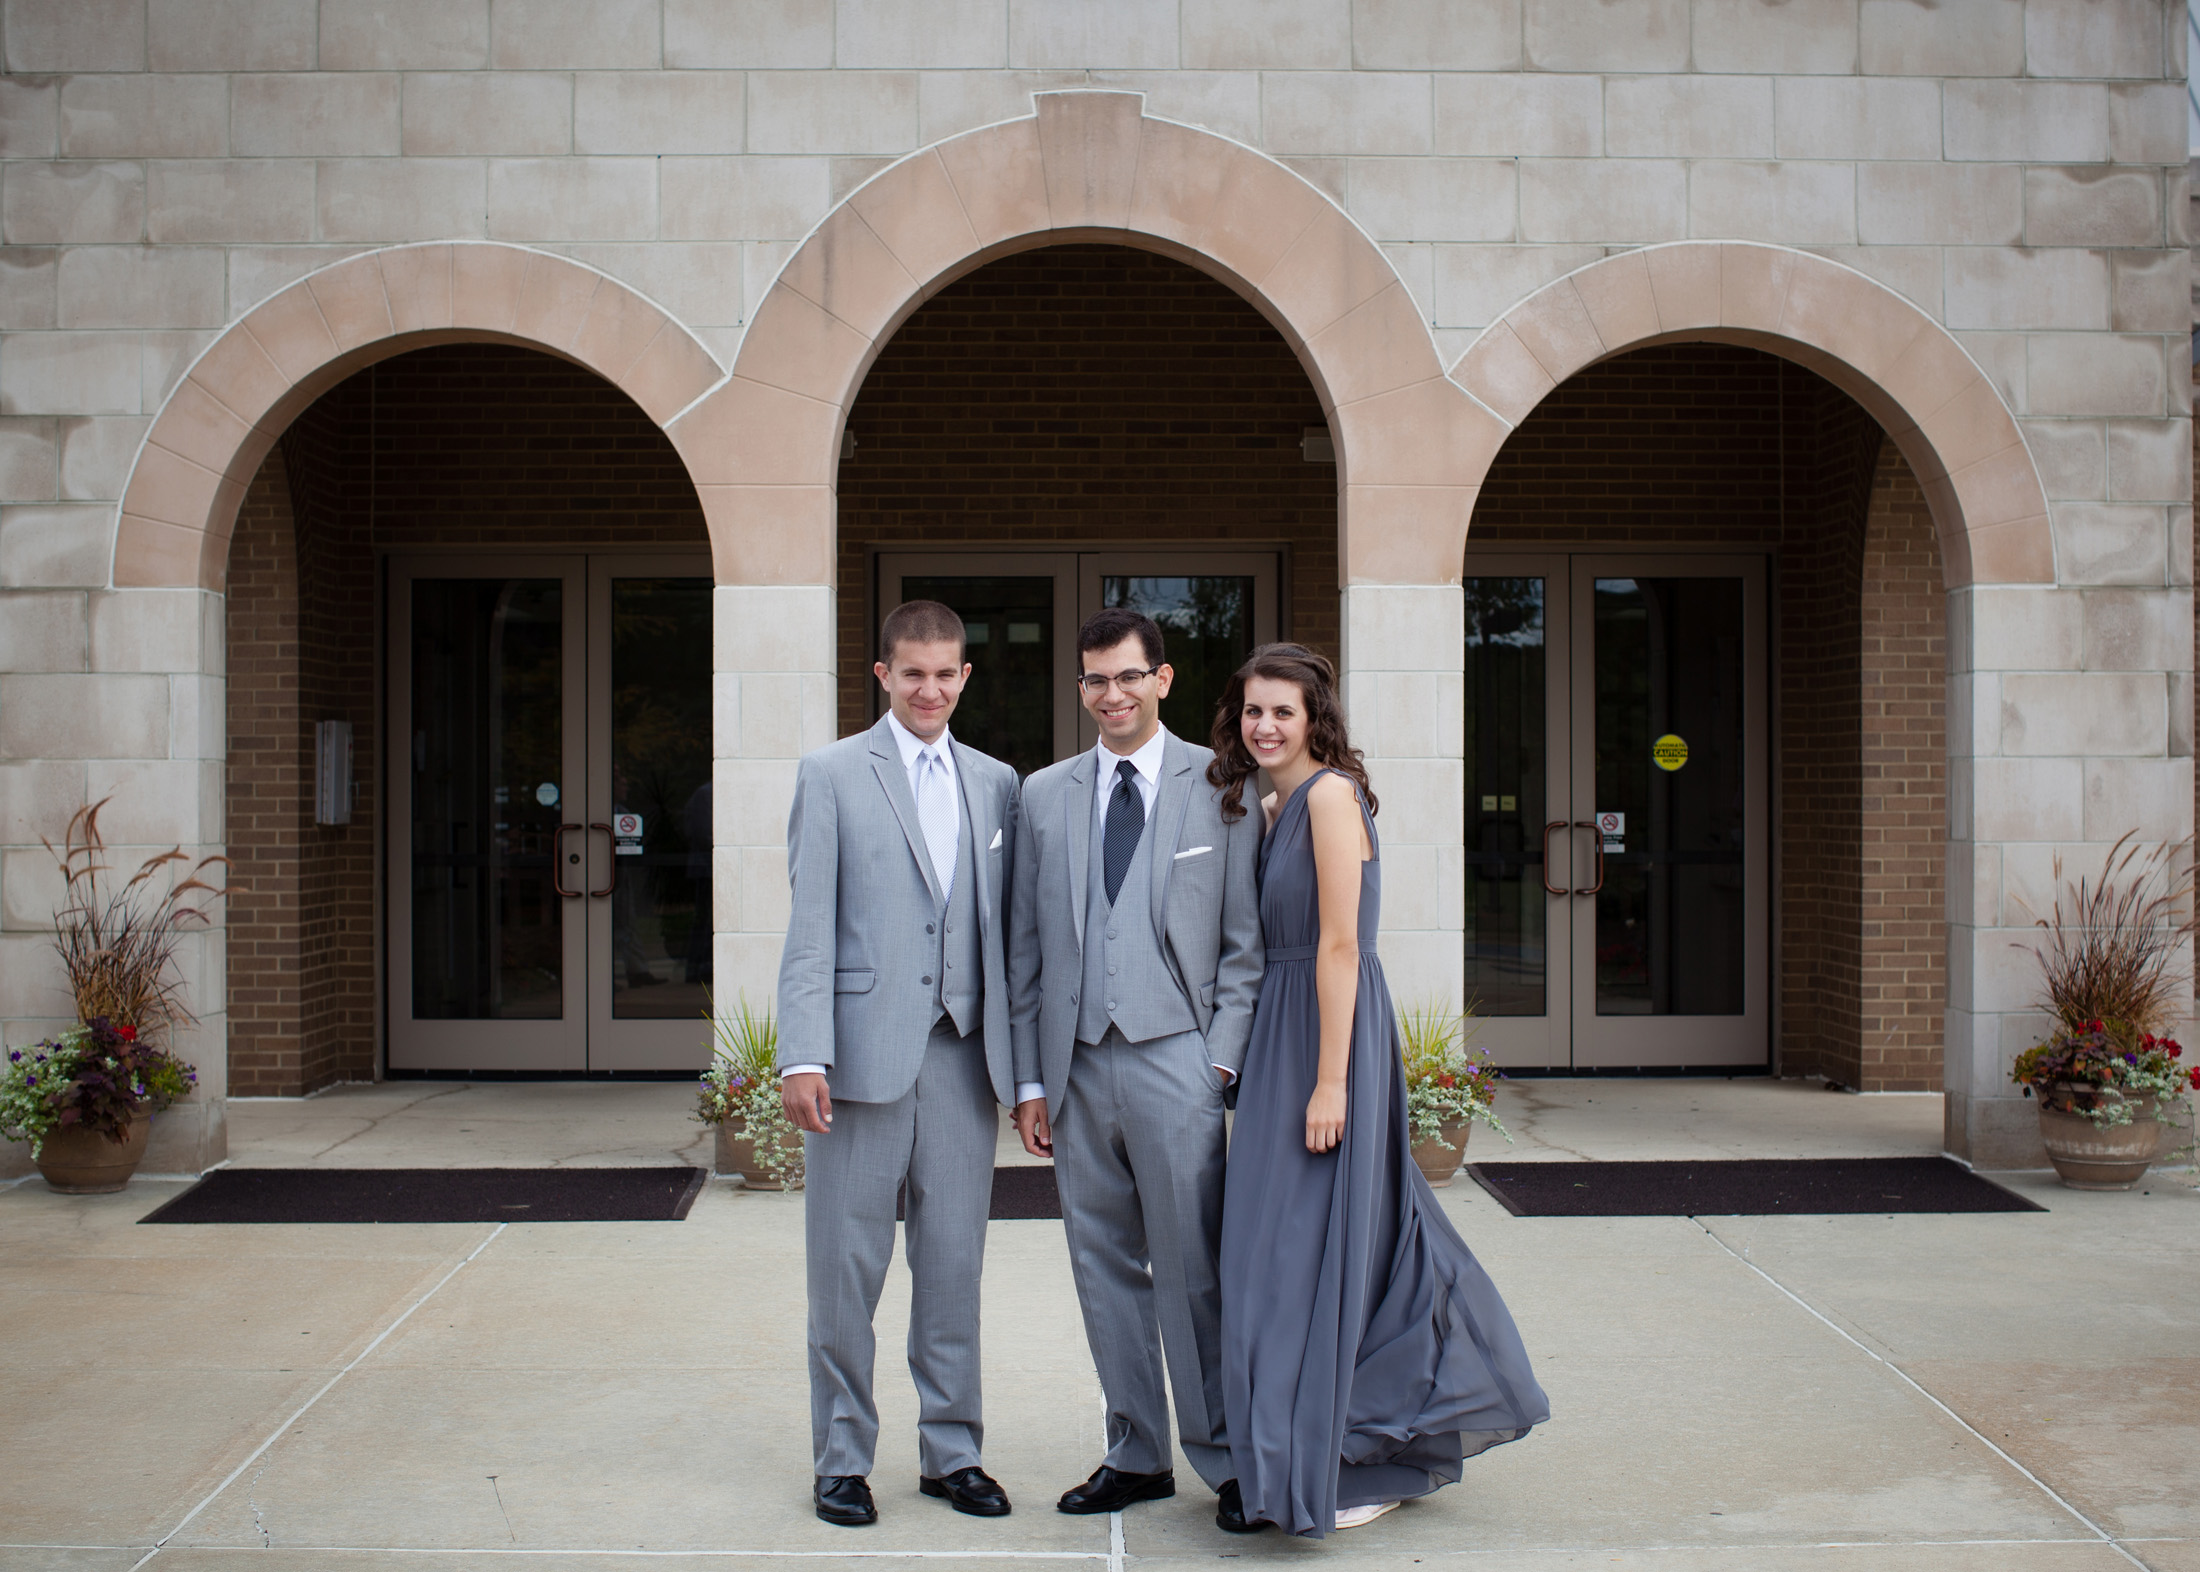 UofM_weddings_hull_melanie_reyes_008